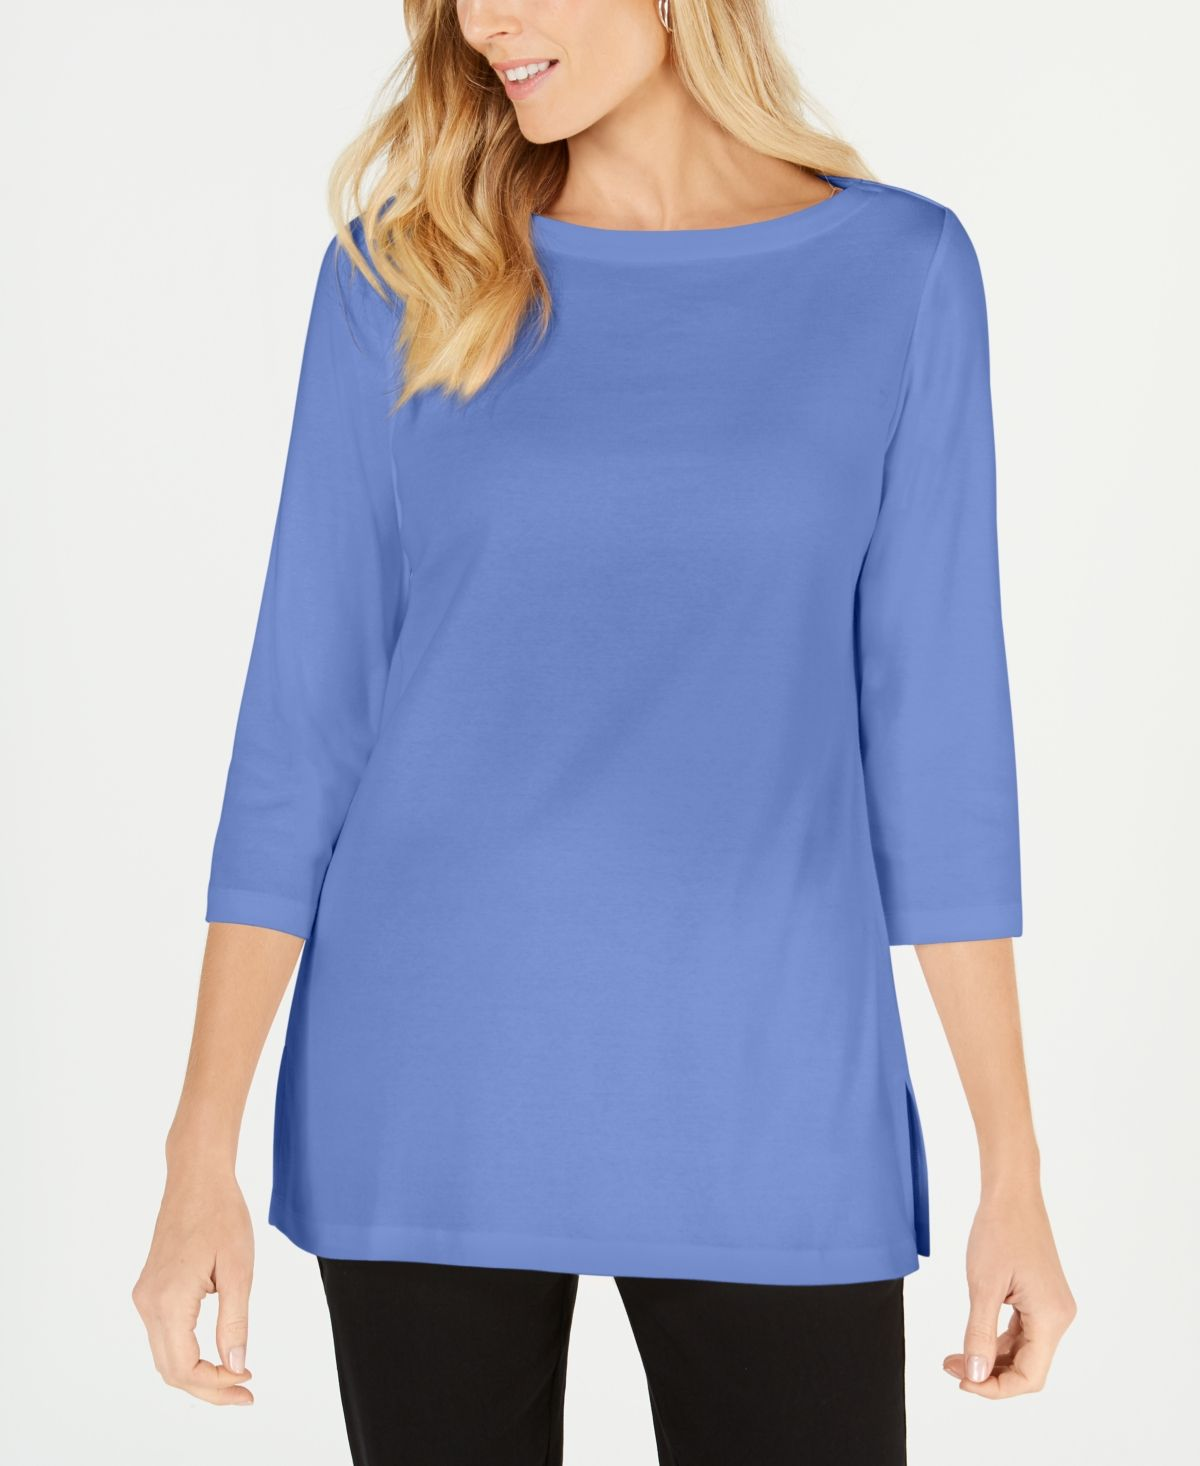 Karen Scott Cotton Boat Neck 34 Sleeve Knit Top, Created